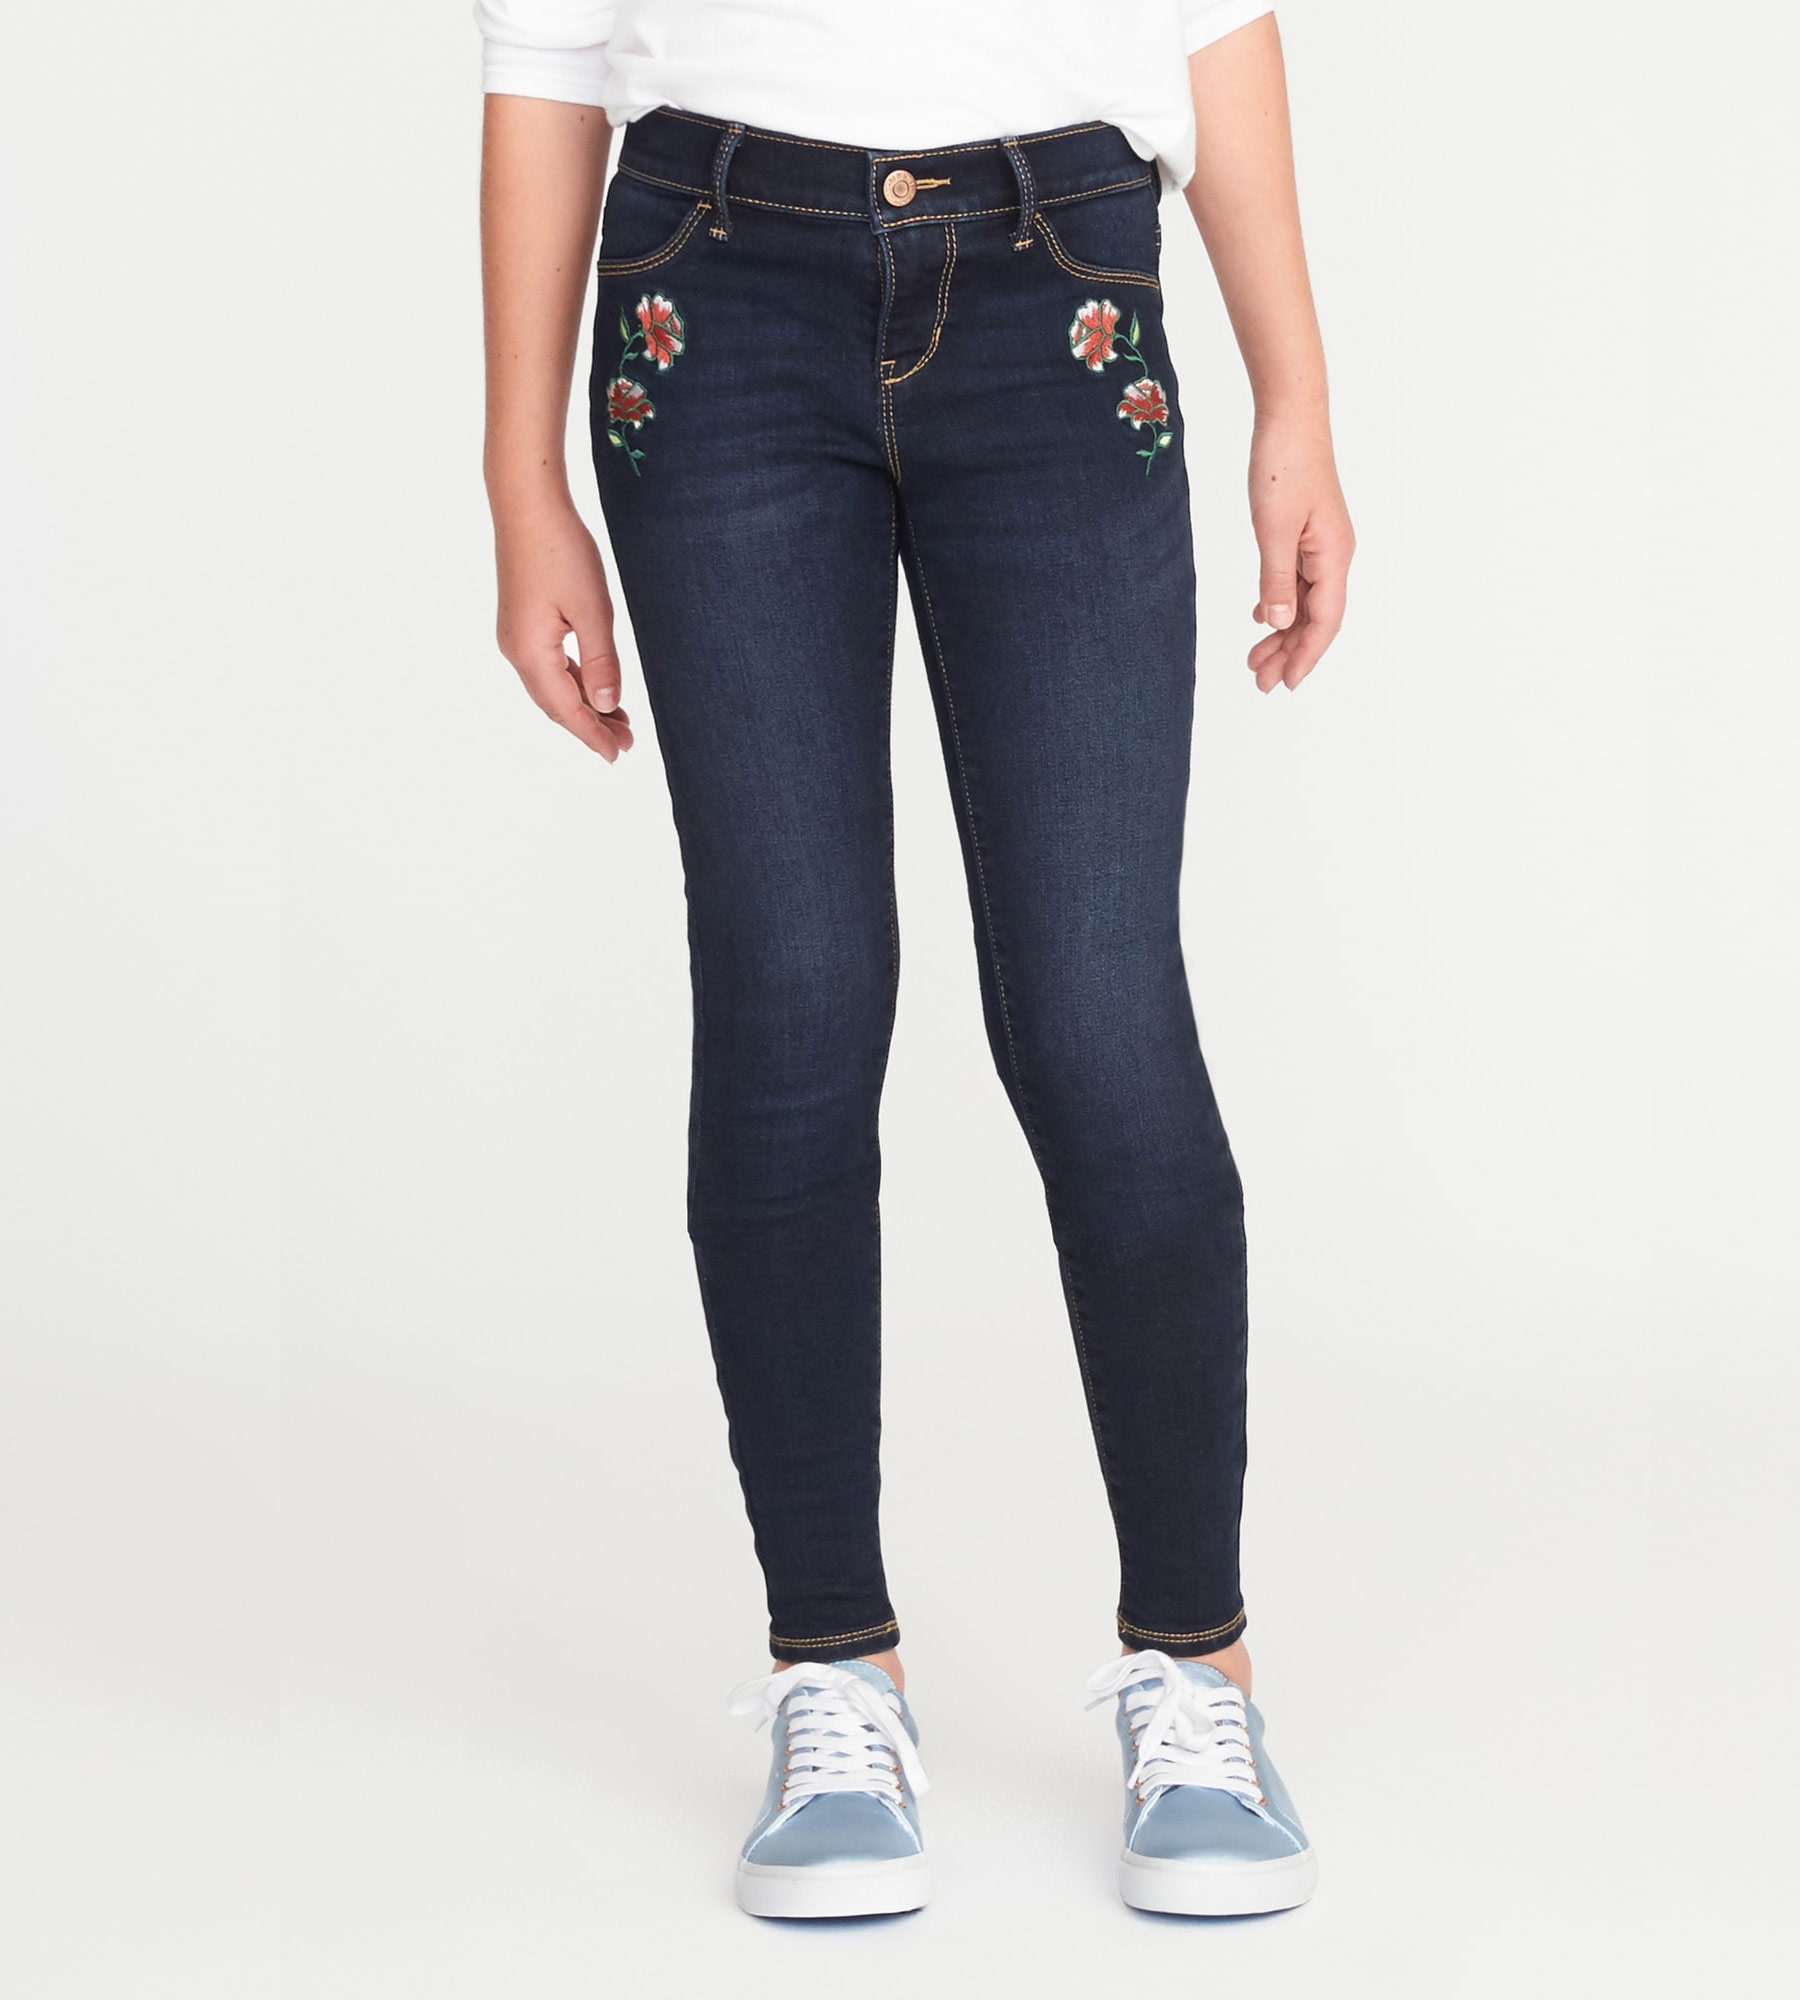 Cozy-Lined Embroidered-Patch Rockstar Jeggings for Girls